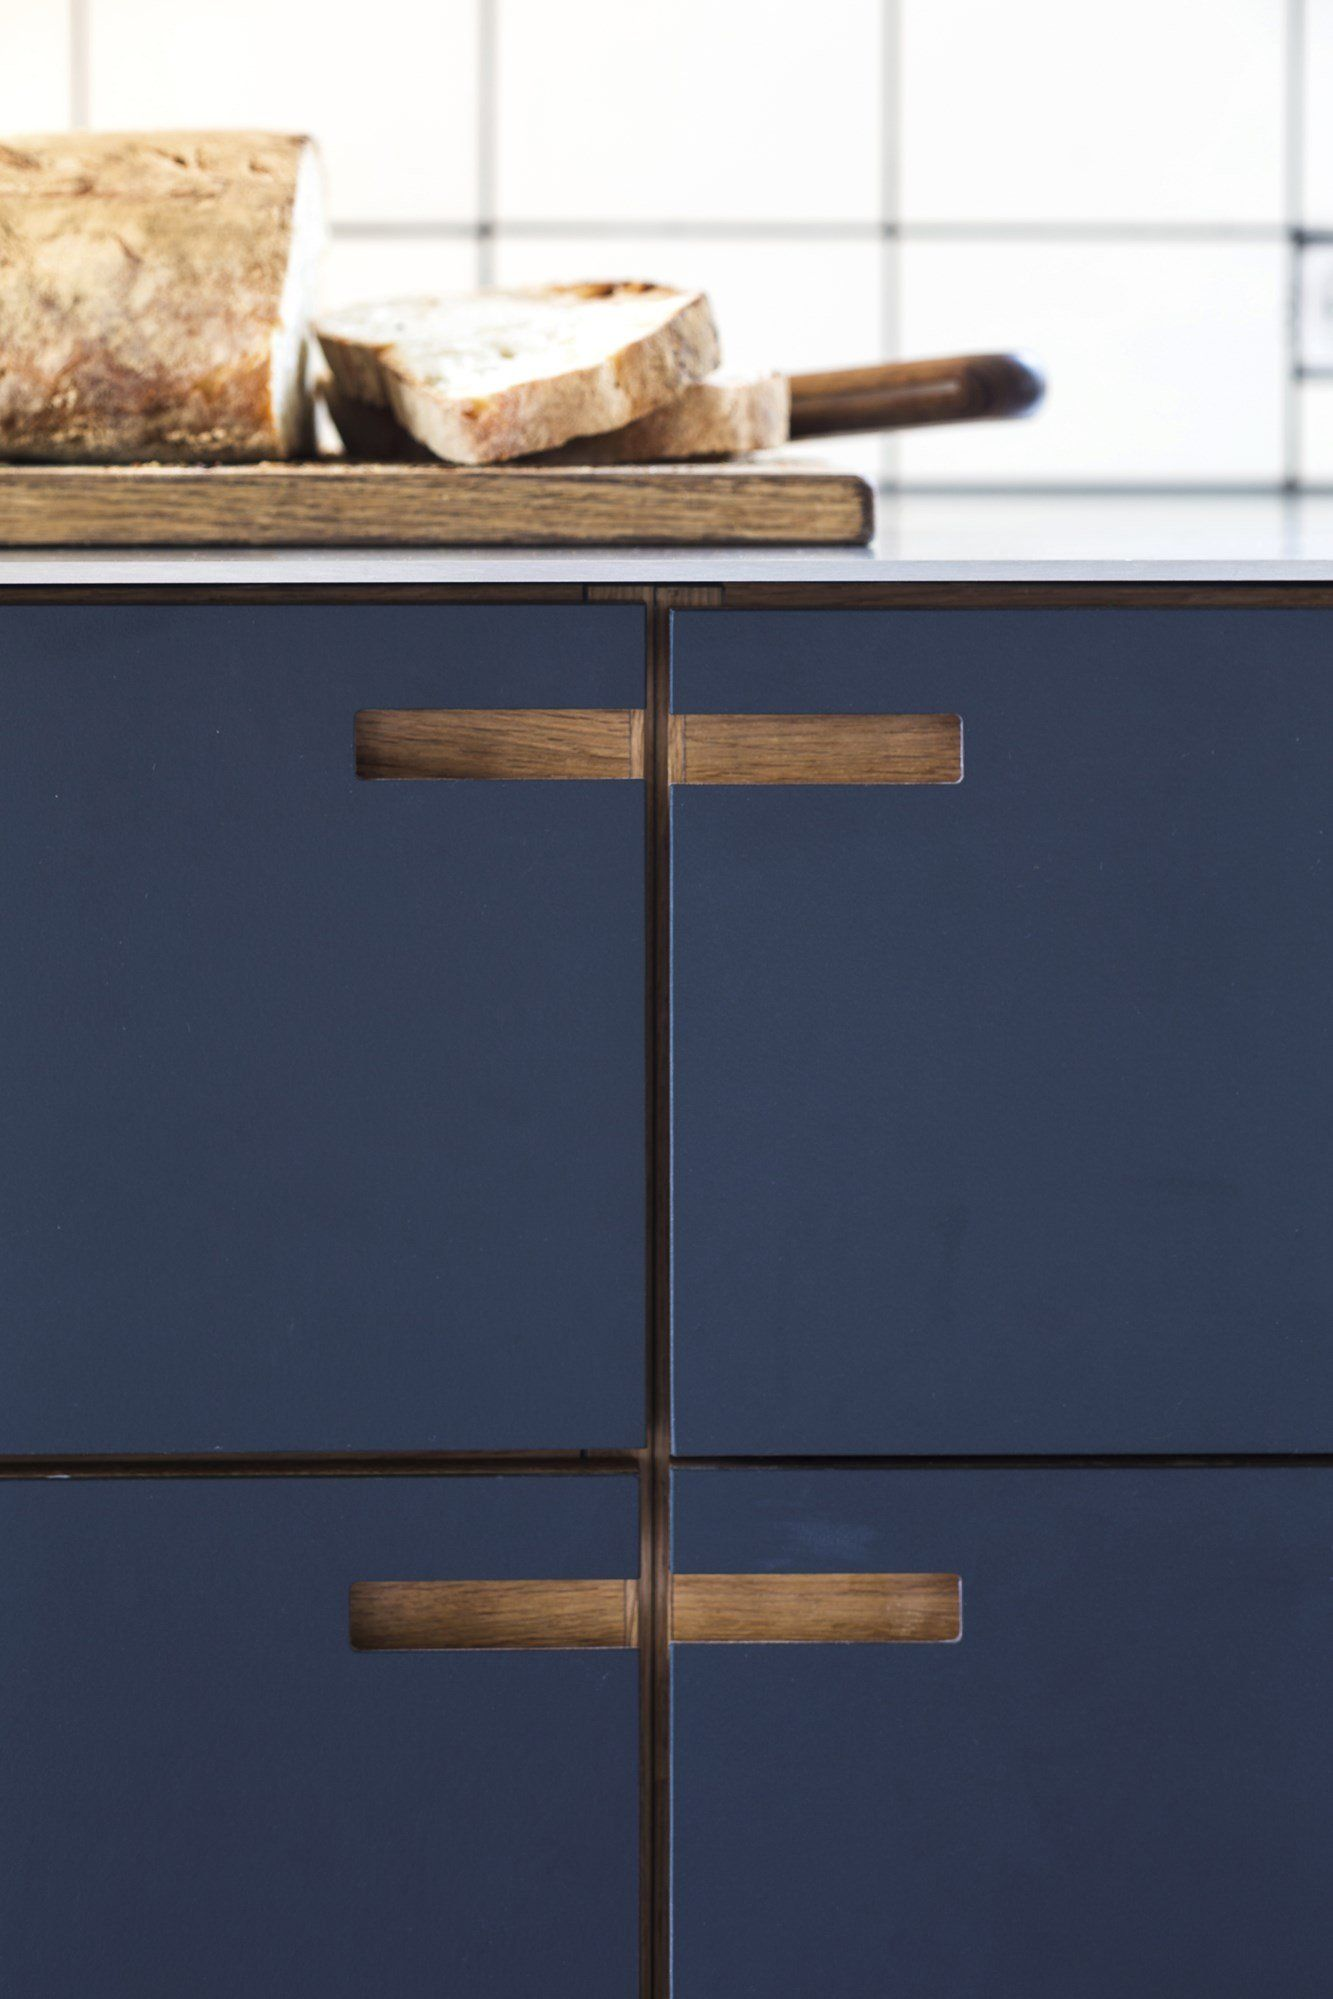 Køkkener & Kønsroller | Pinterest | Kitchens, Drawers and Detail